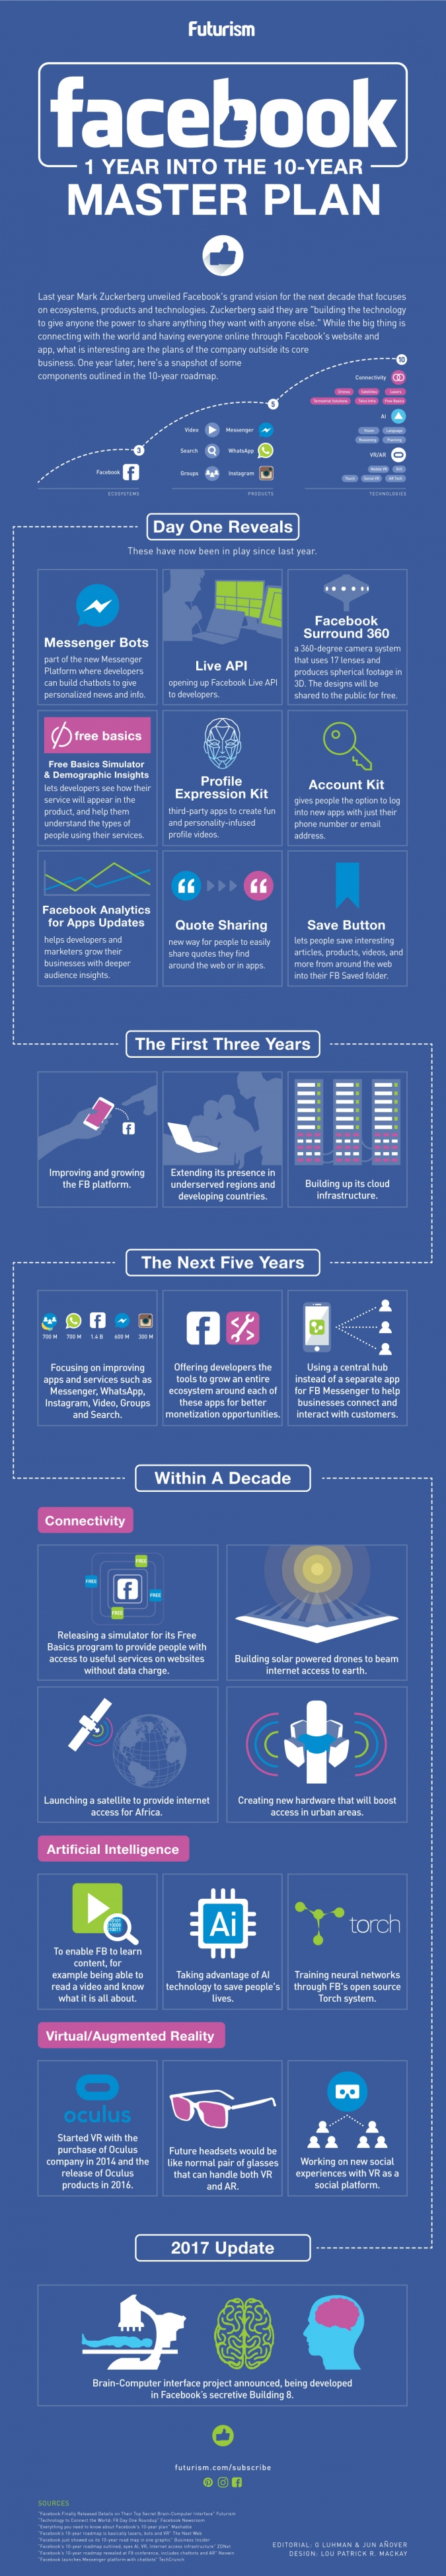 Die Zukunft für Facebook Marketing – Virtual Reality 10 Jahres Facebook Masterplan [Infografik]